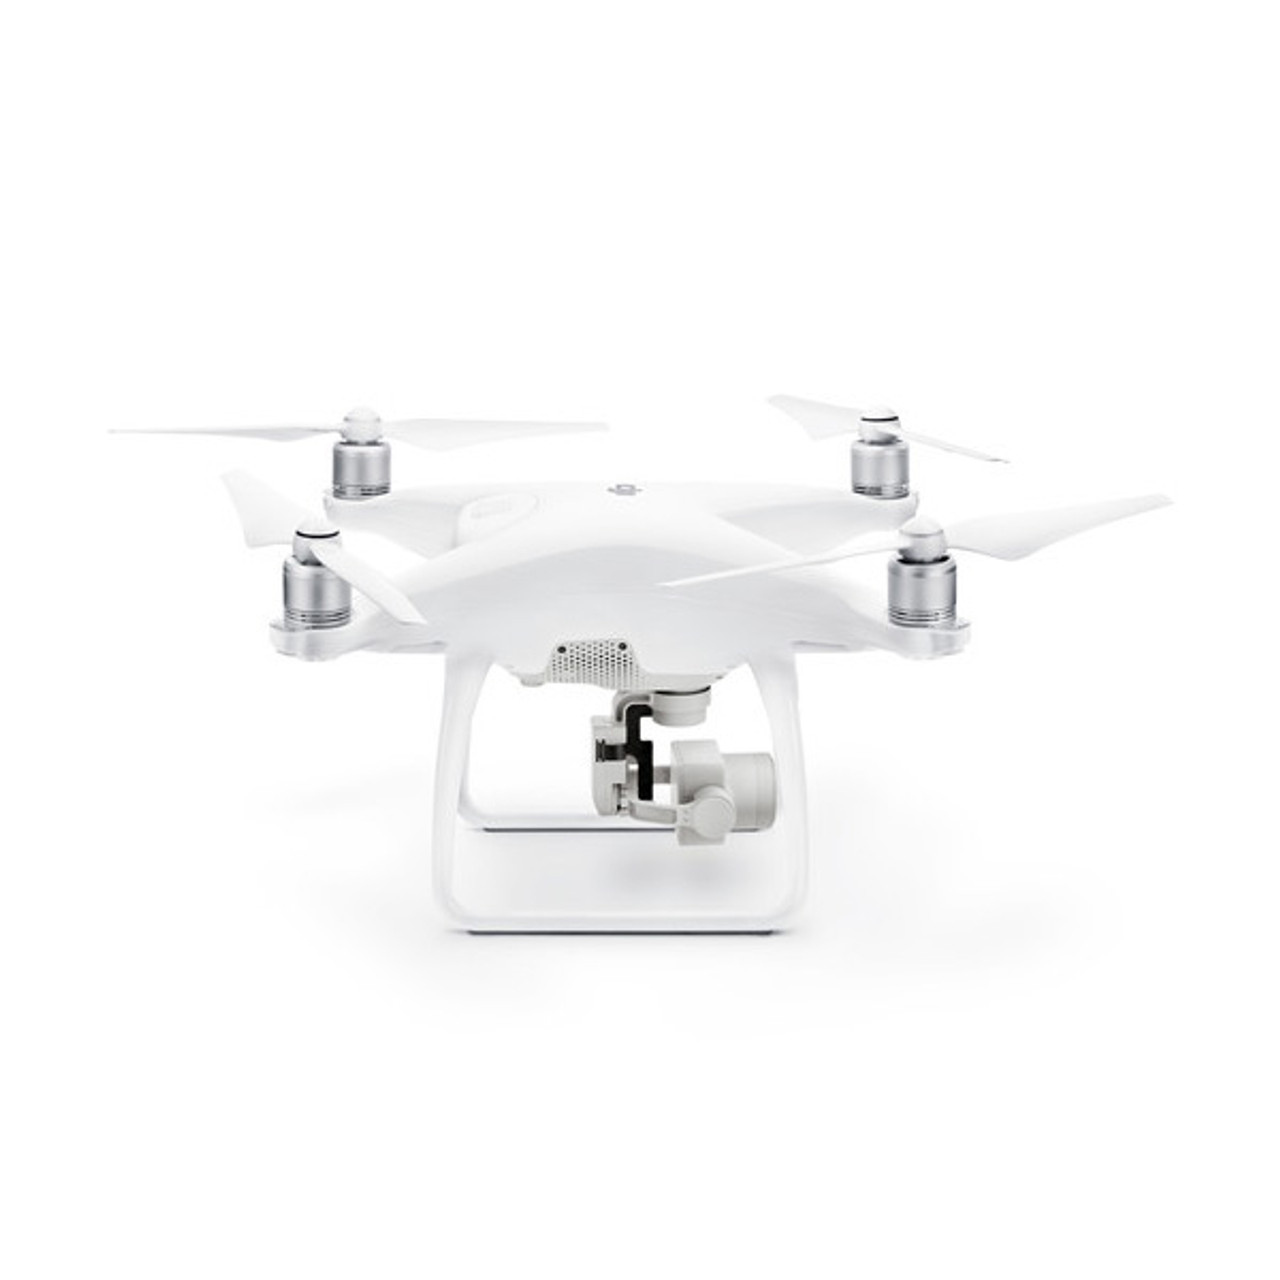 DJI Phantom 4 Advanced+